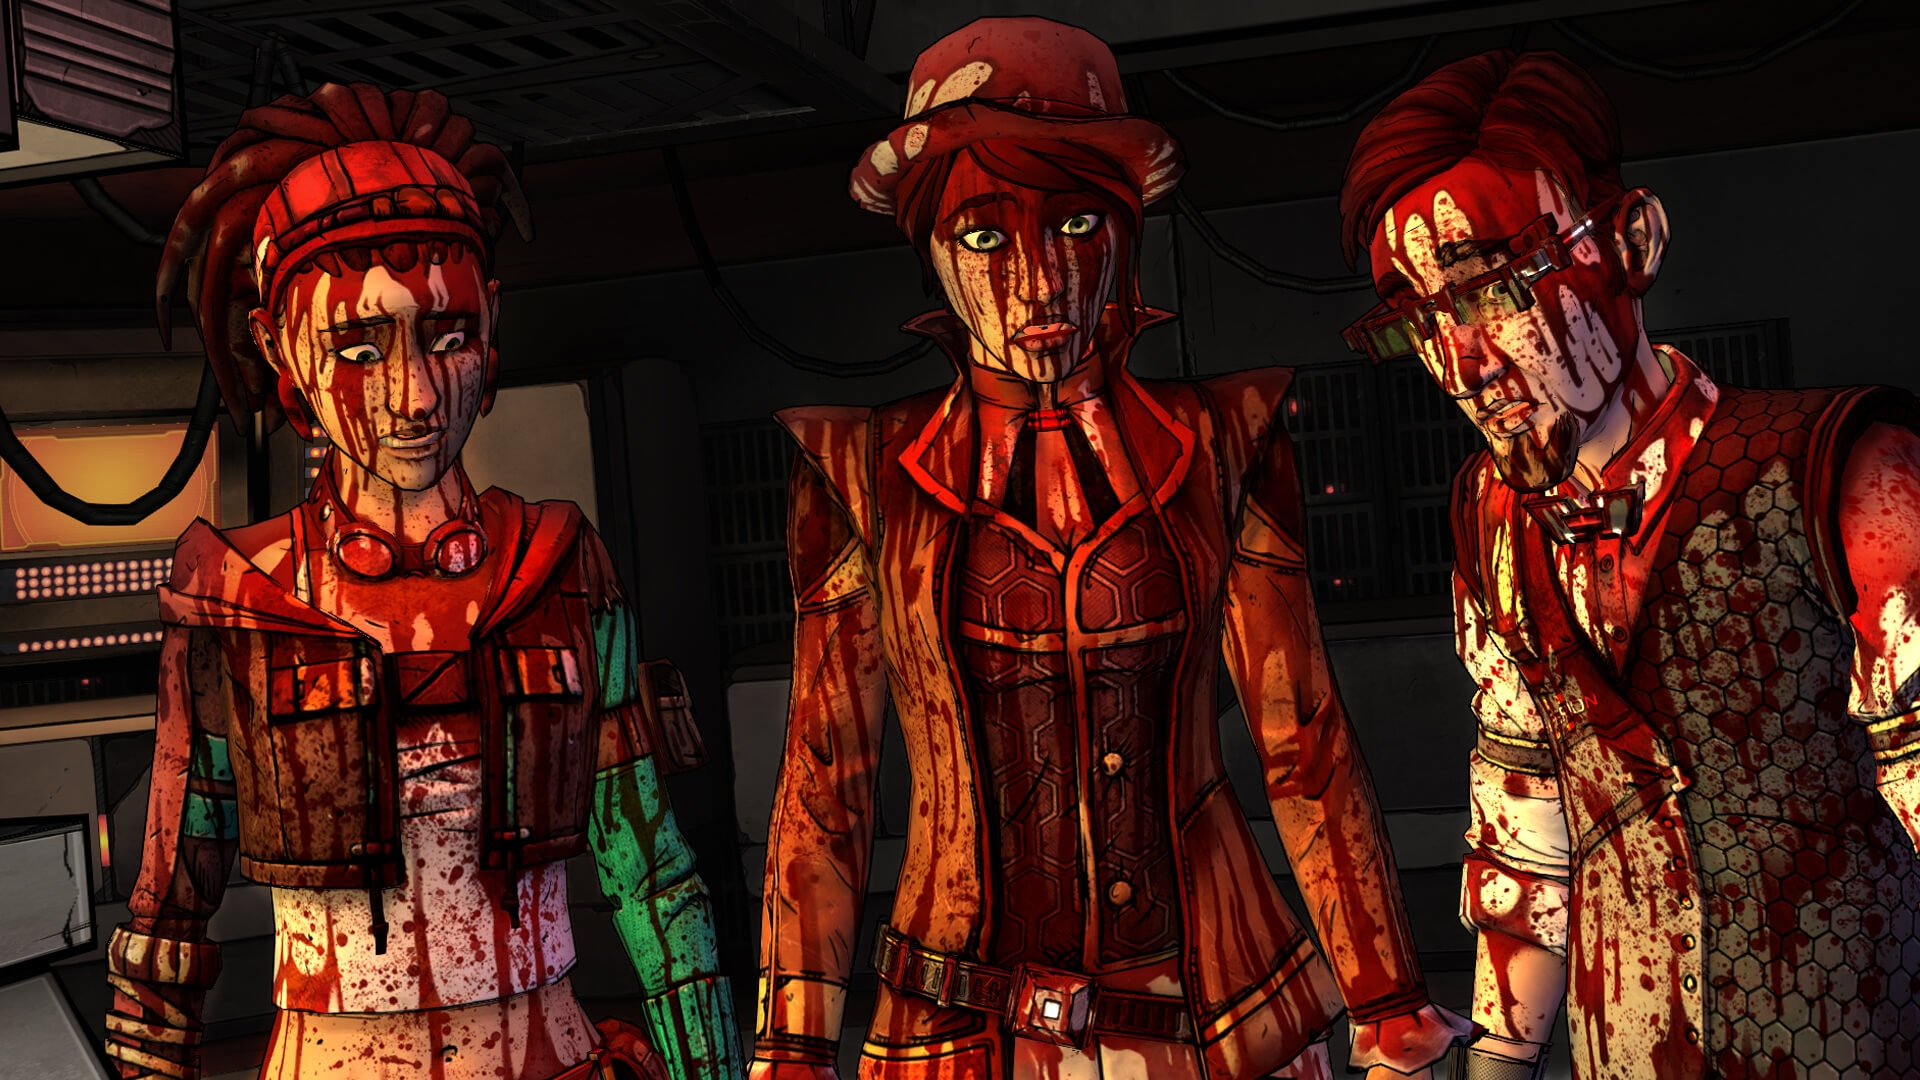 tales from the borderlands 1 - Tales from the Borderlands Disc Launch Trailer Brings Out the Big Guns